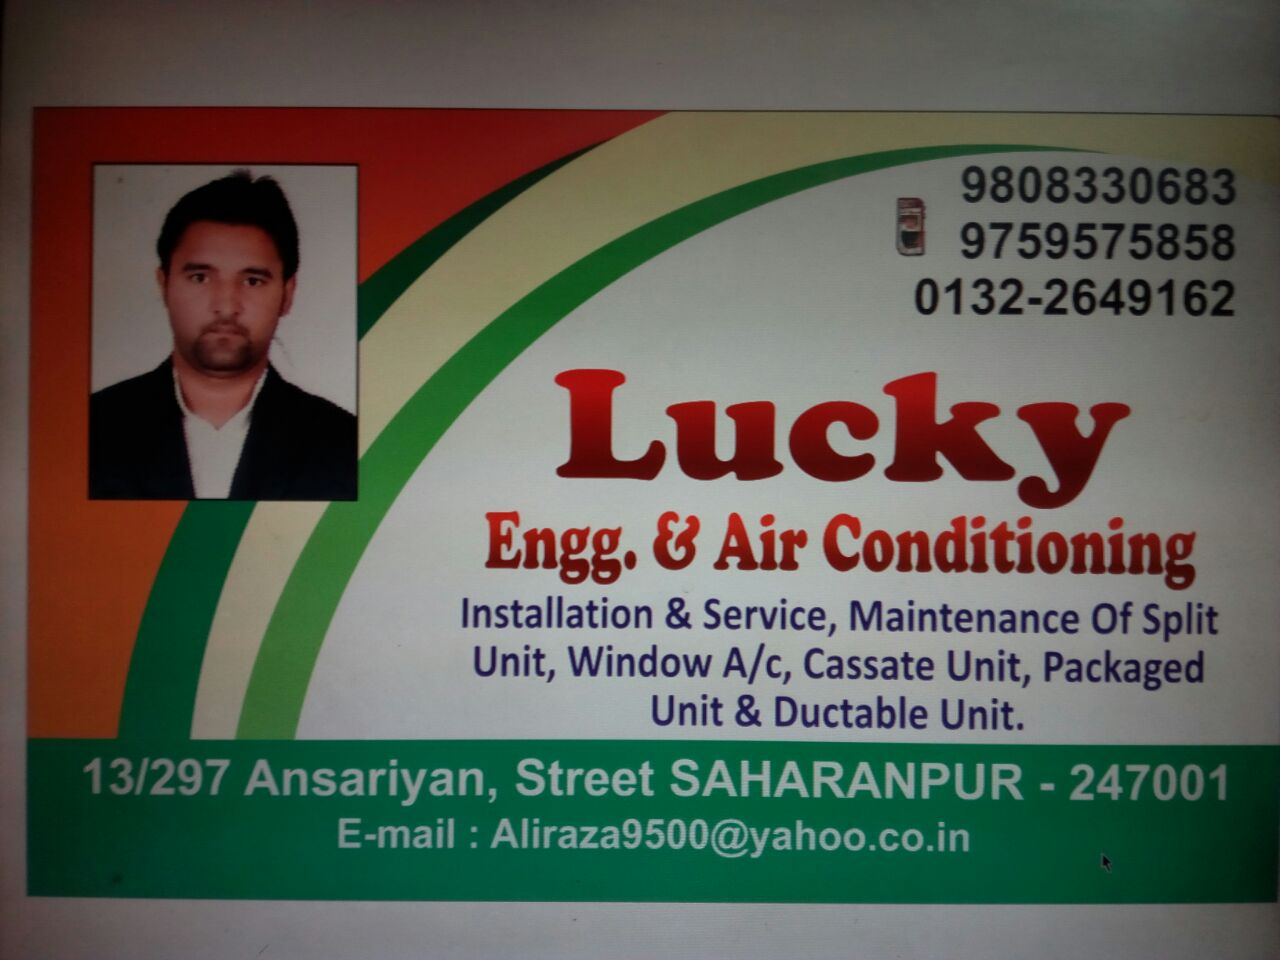 LUCKY ENGG AIR CONDITIONING in Saharanpur